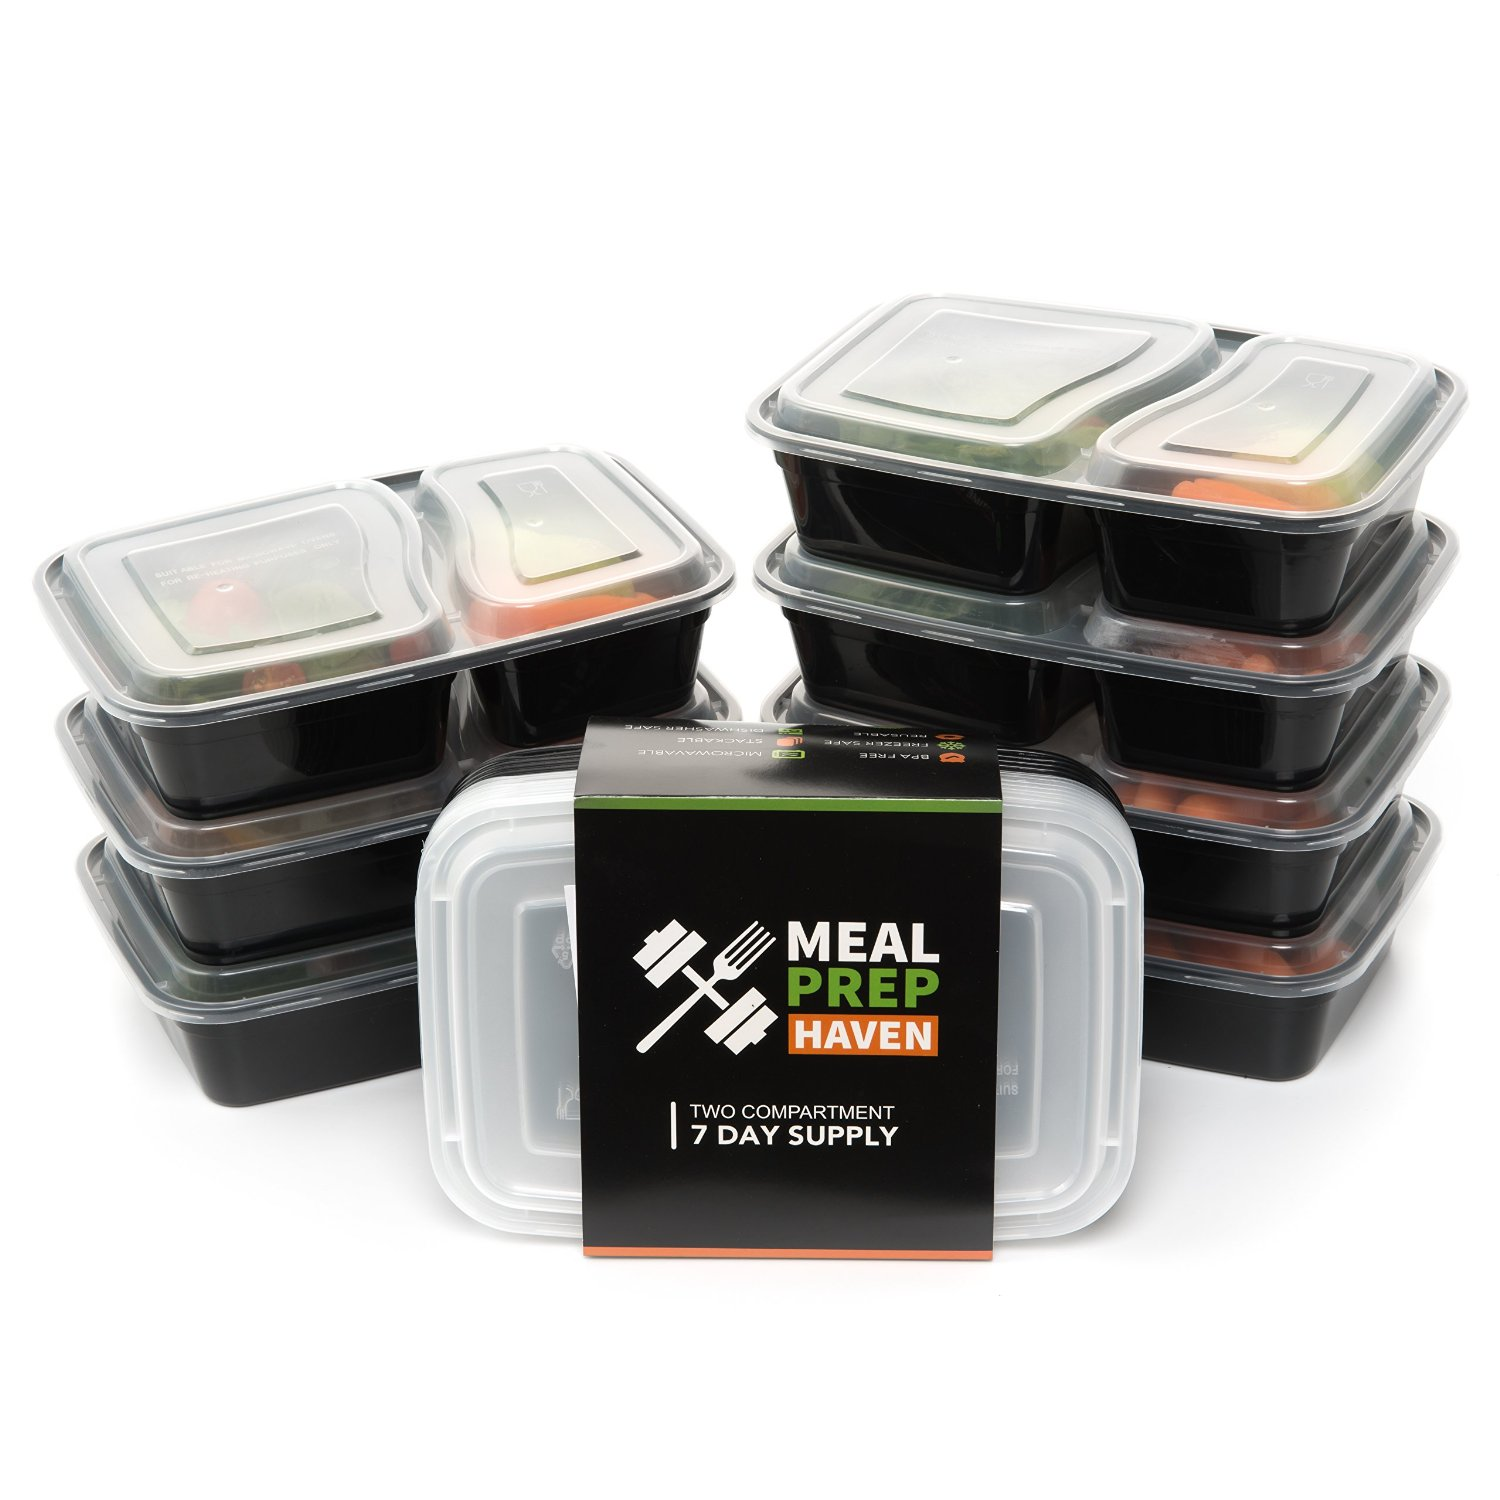 Meal Prep Haven - 7 pack - 2 Compartment Food Storage Containers with Lids, Reusable, Freezer Microwave & Dishwasher Safe, Bento Lunch Box, Stackable, BPA Free, Leak Proof, 17 oz